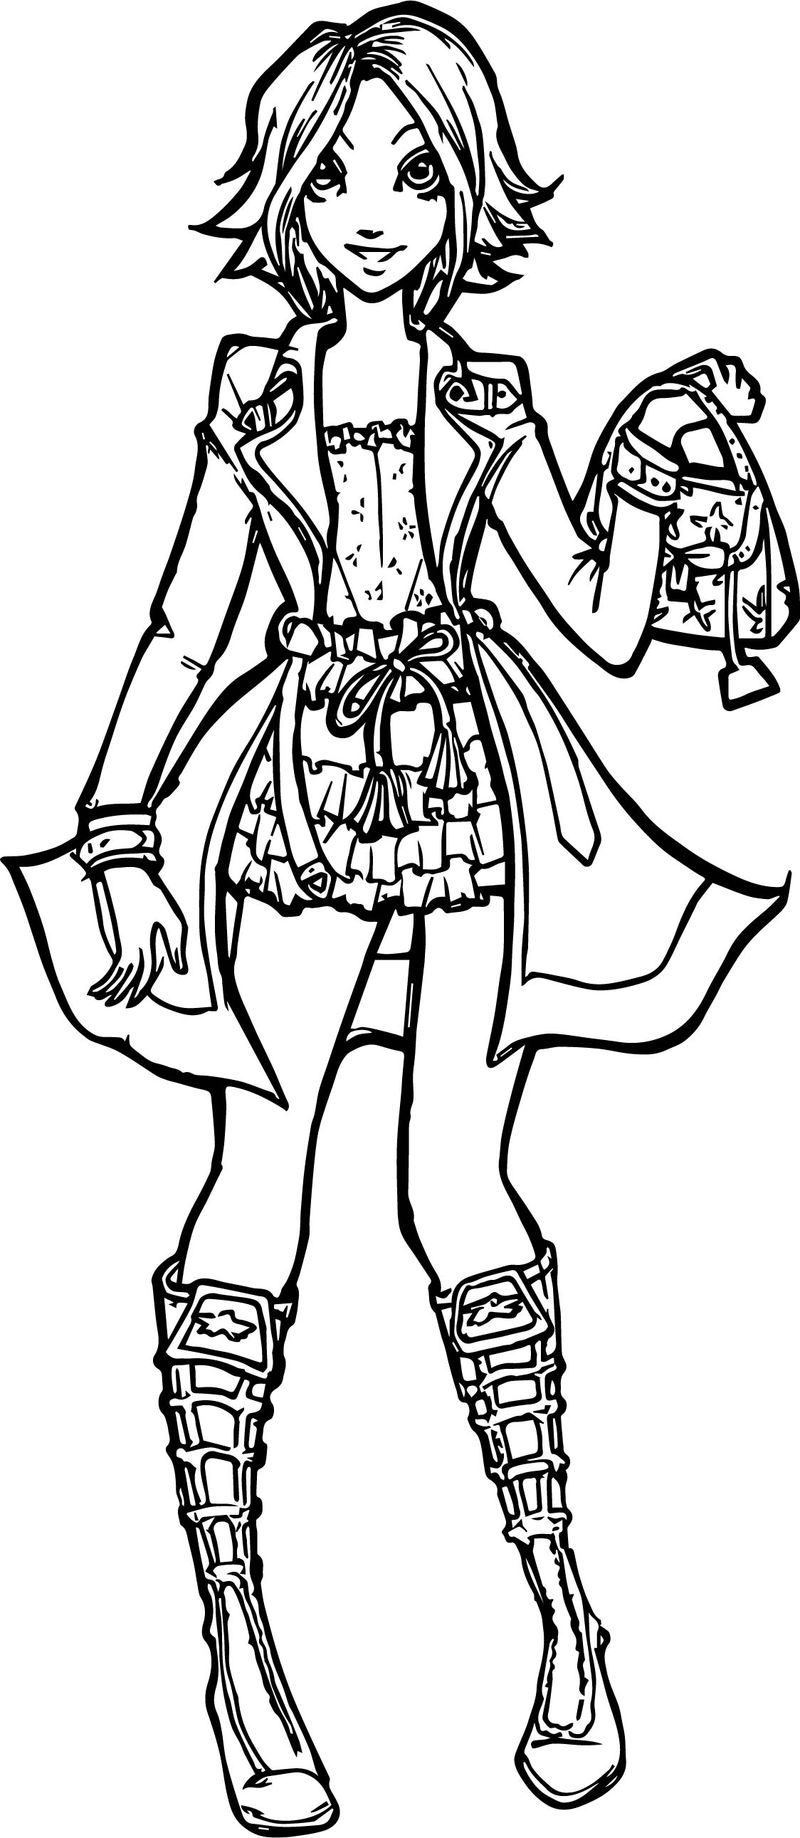 Rapunzel Woman Modern Girl Coloring Page